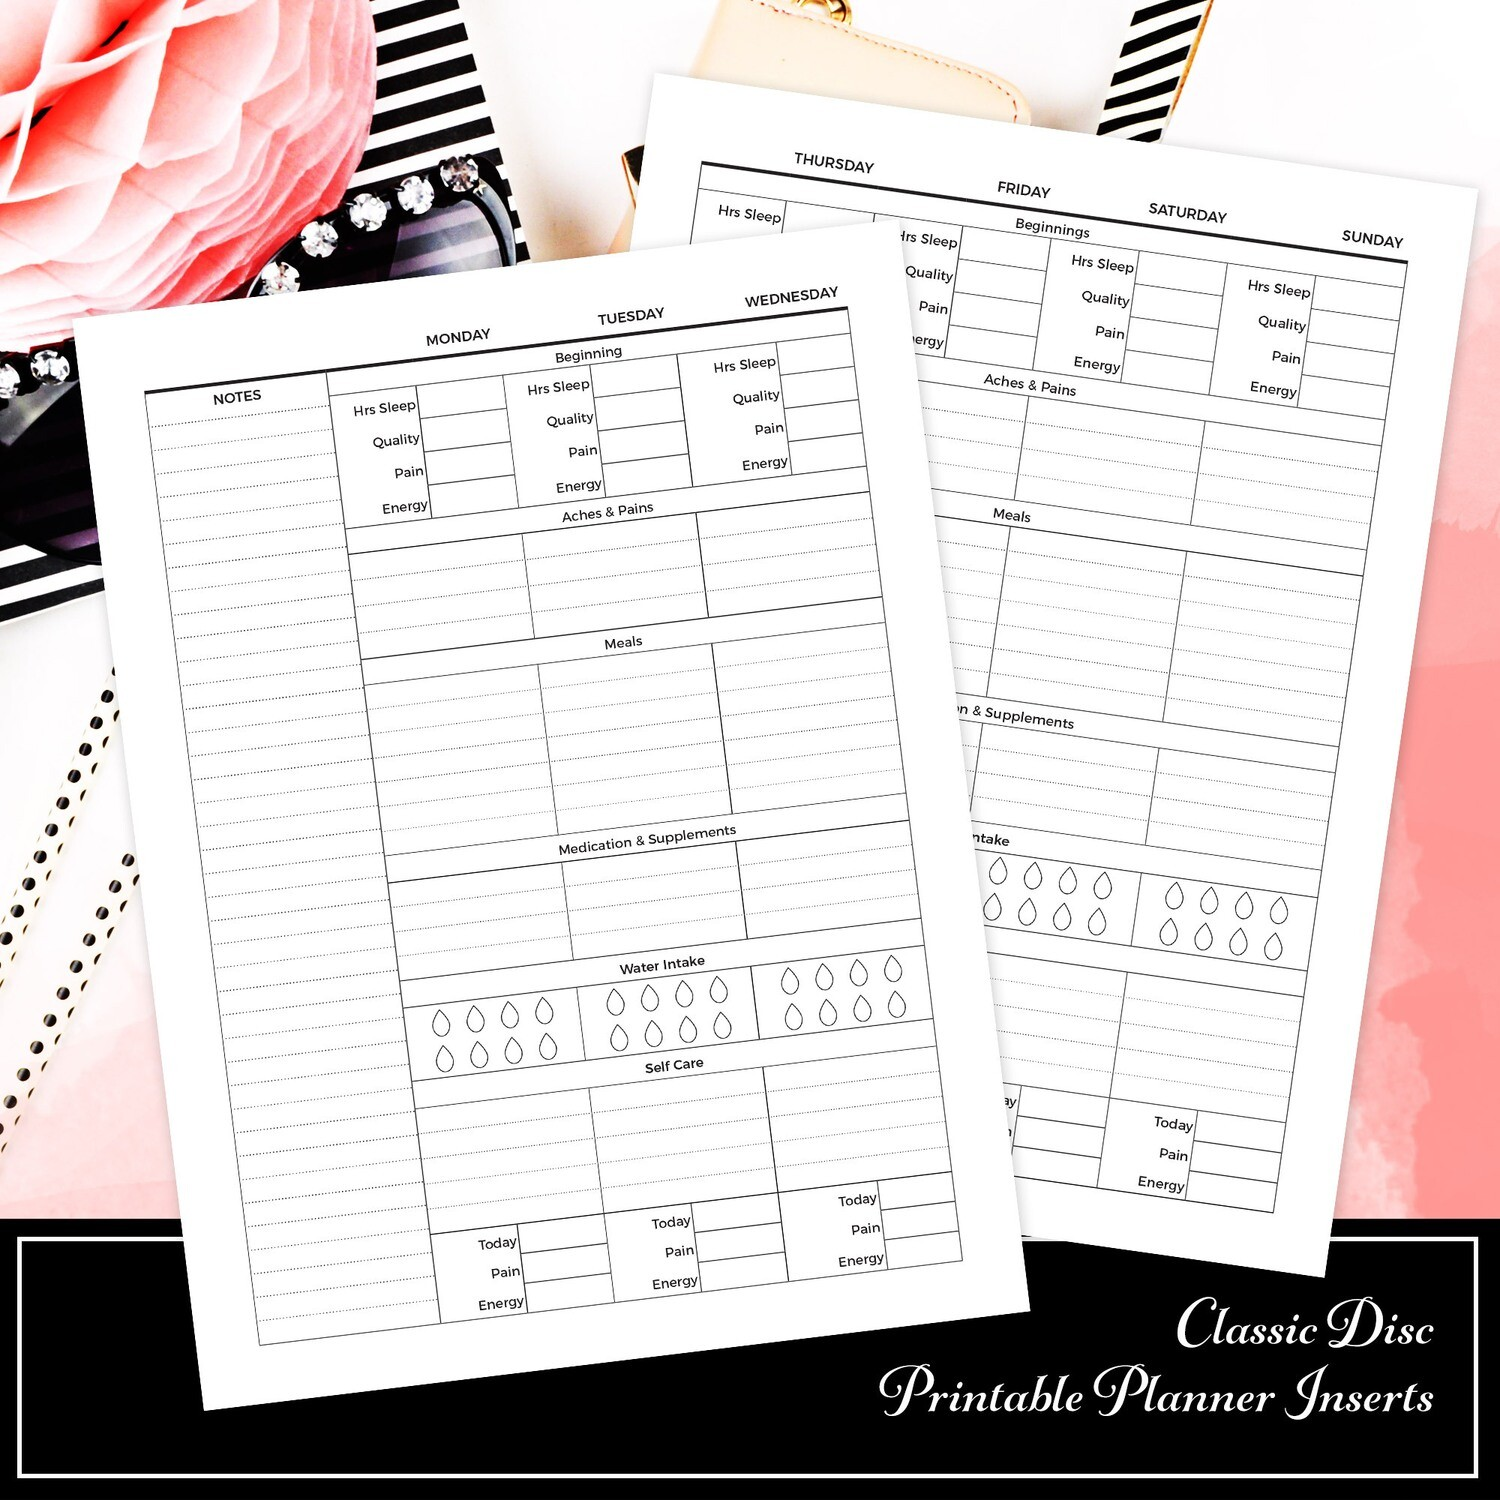 photograph regarding Printable Planner Inserts called Common DISC - Exercise and Wellbeing Weekly Printable Planner Add